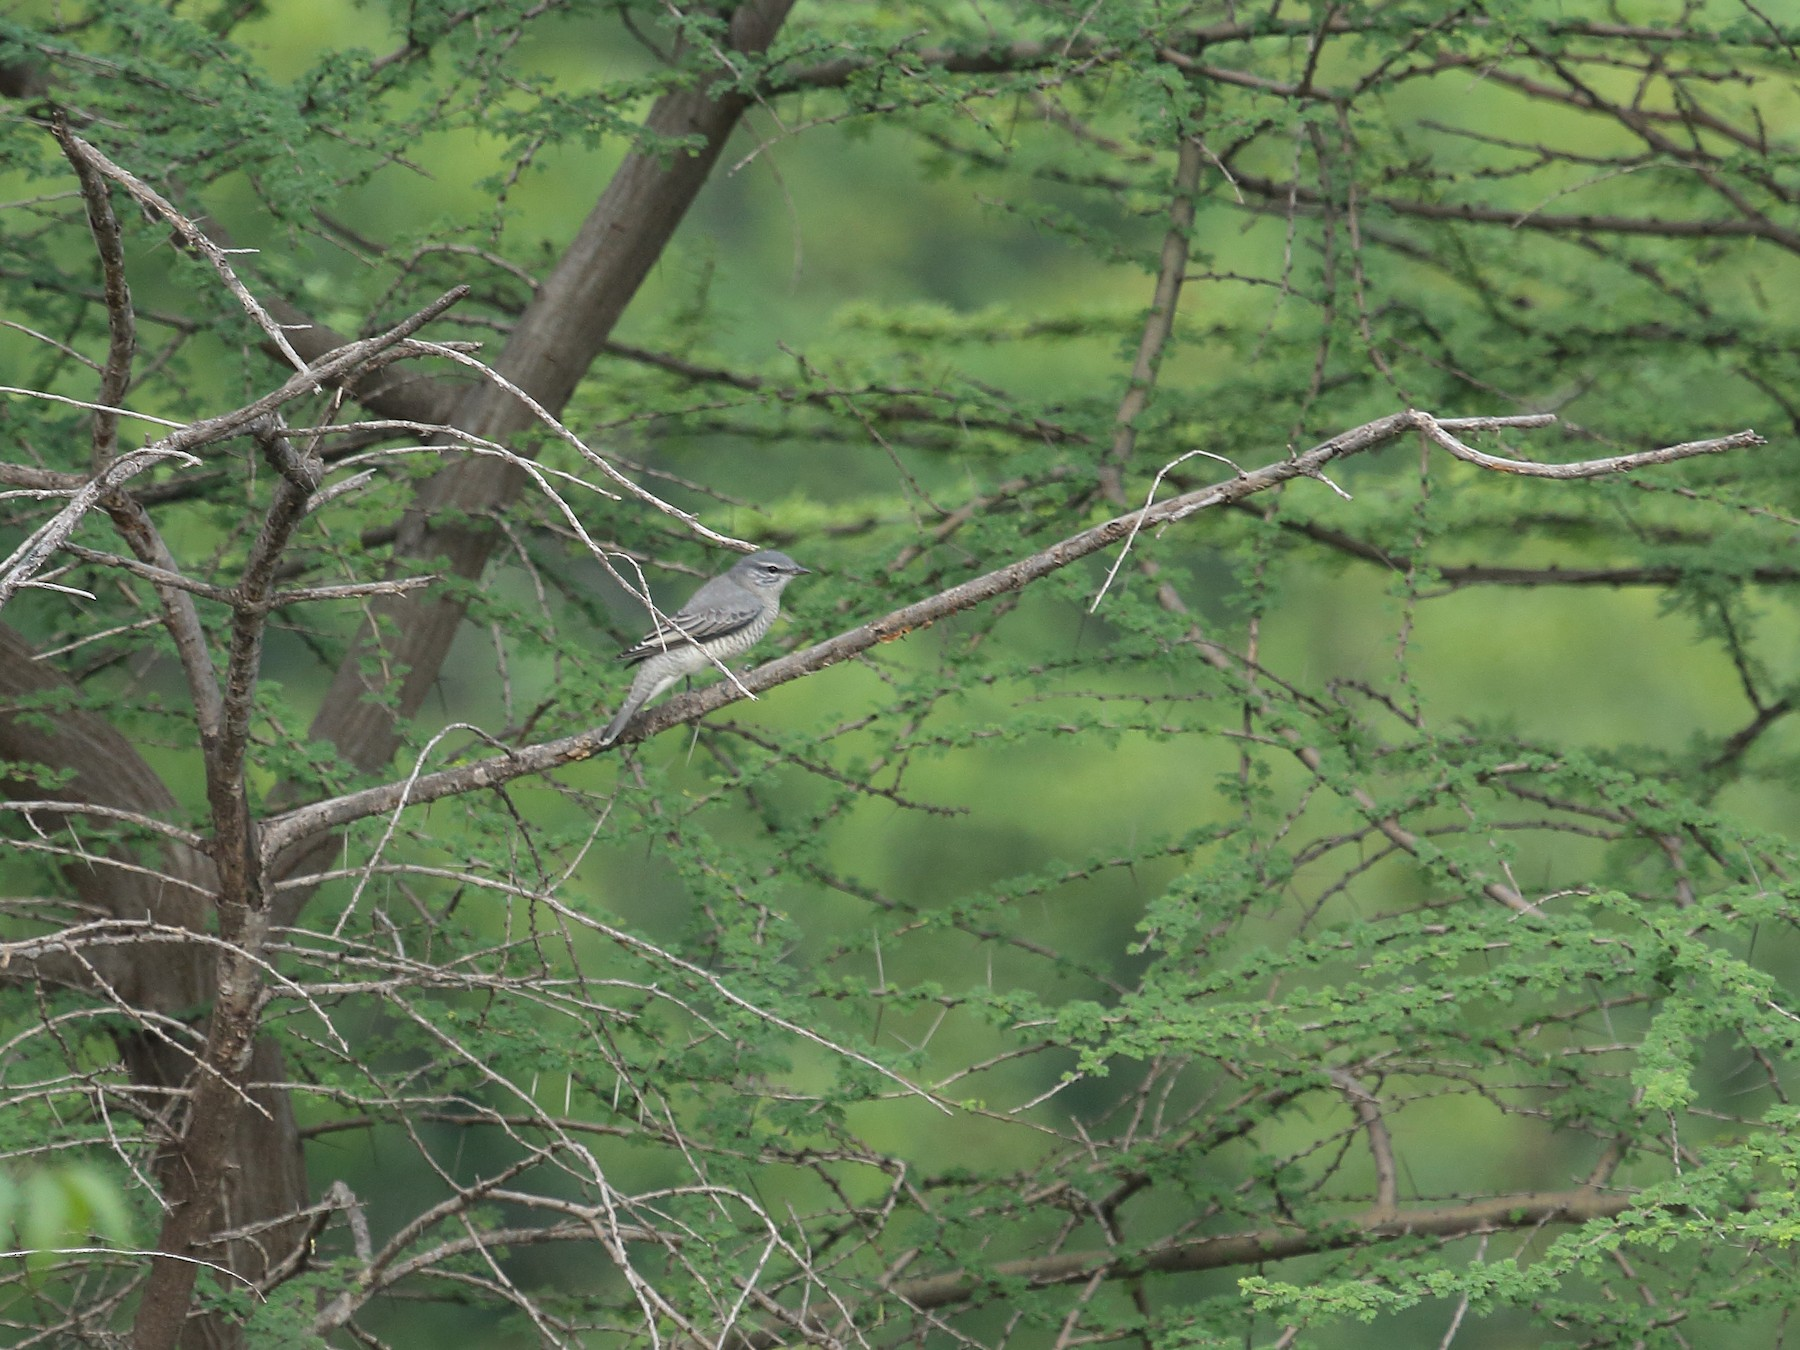 Black-headed Cuckooshrike - Raaj  Bora